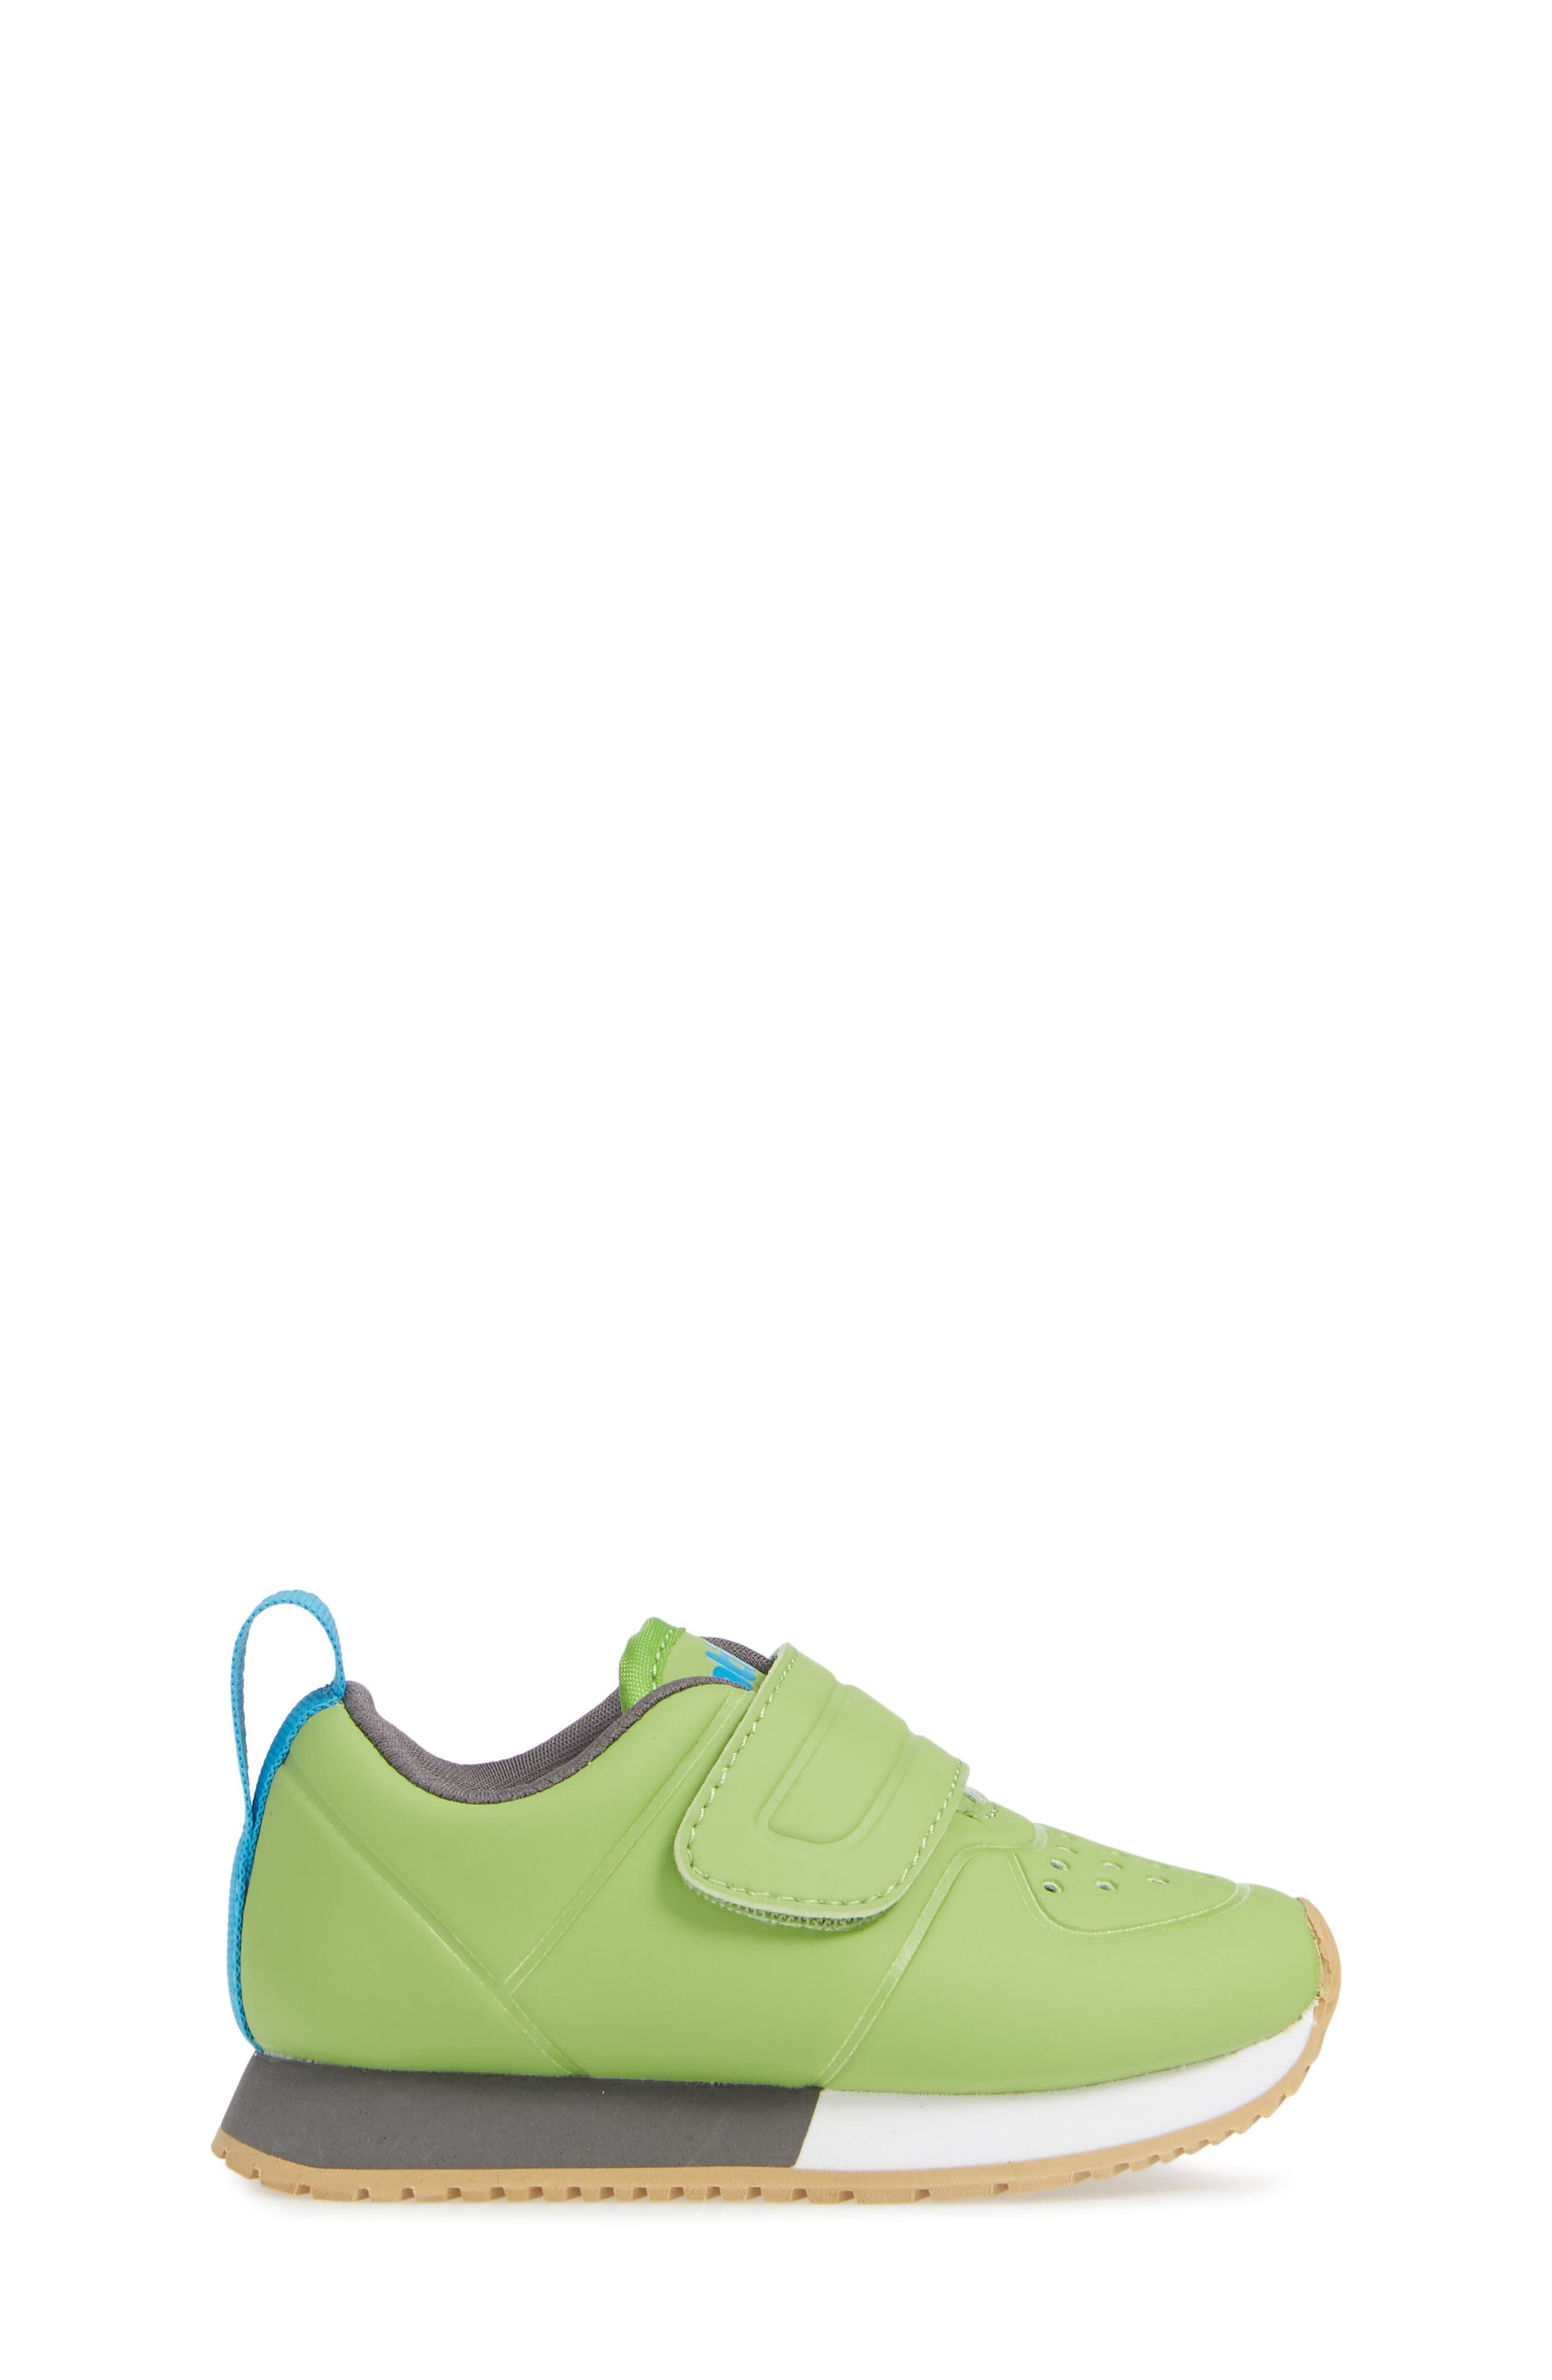 Cornell Perforated Colorblock Sneaker,                             Alternate thumbnail 3, color,                             SPRING GREEN/ WHITE/ GREY